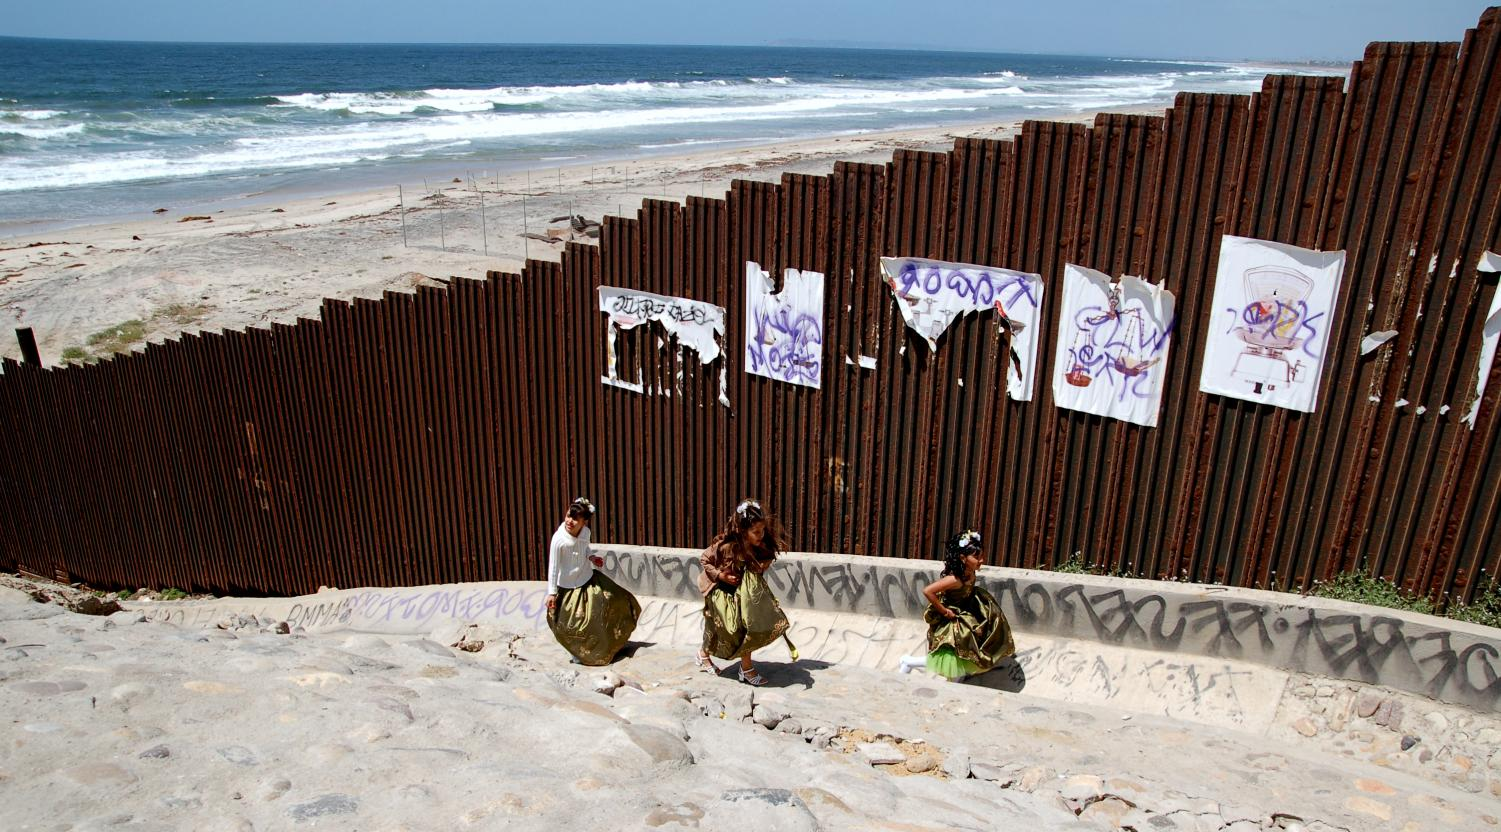 The Forgotten Ones. Playing alongside the wall, three little girls play along the US/Mexican border at Tijuana Beach, in Baja California, Mexico. Beknownstingly, it is unknown of where these girls came from or if they are parentless. Unfortunately, these girls are a small amount of the millions of the children that were left parentless during the procession of migrants.